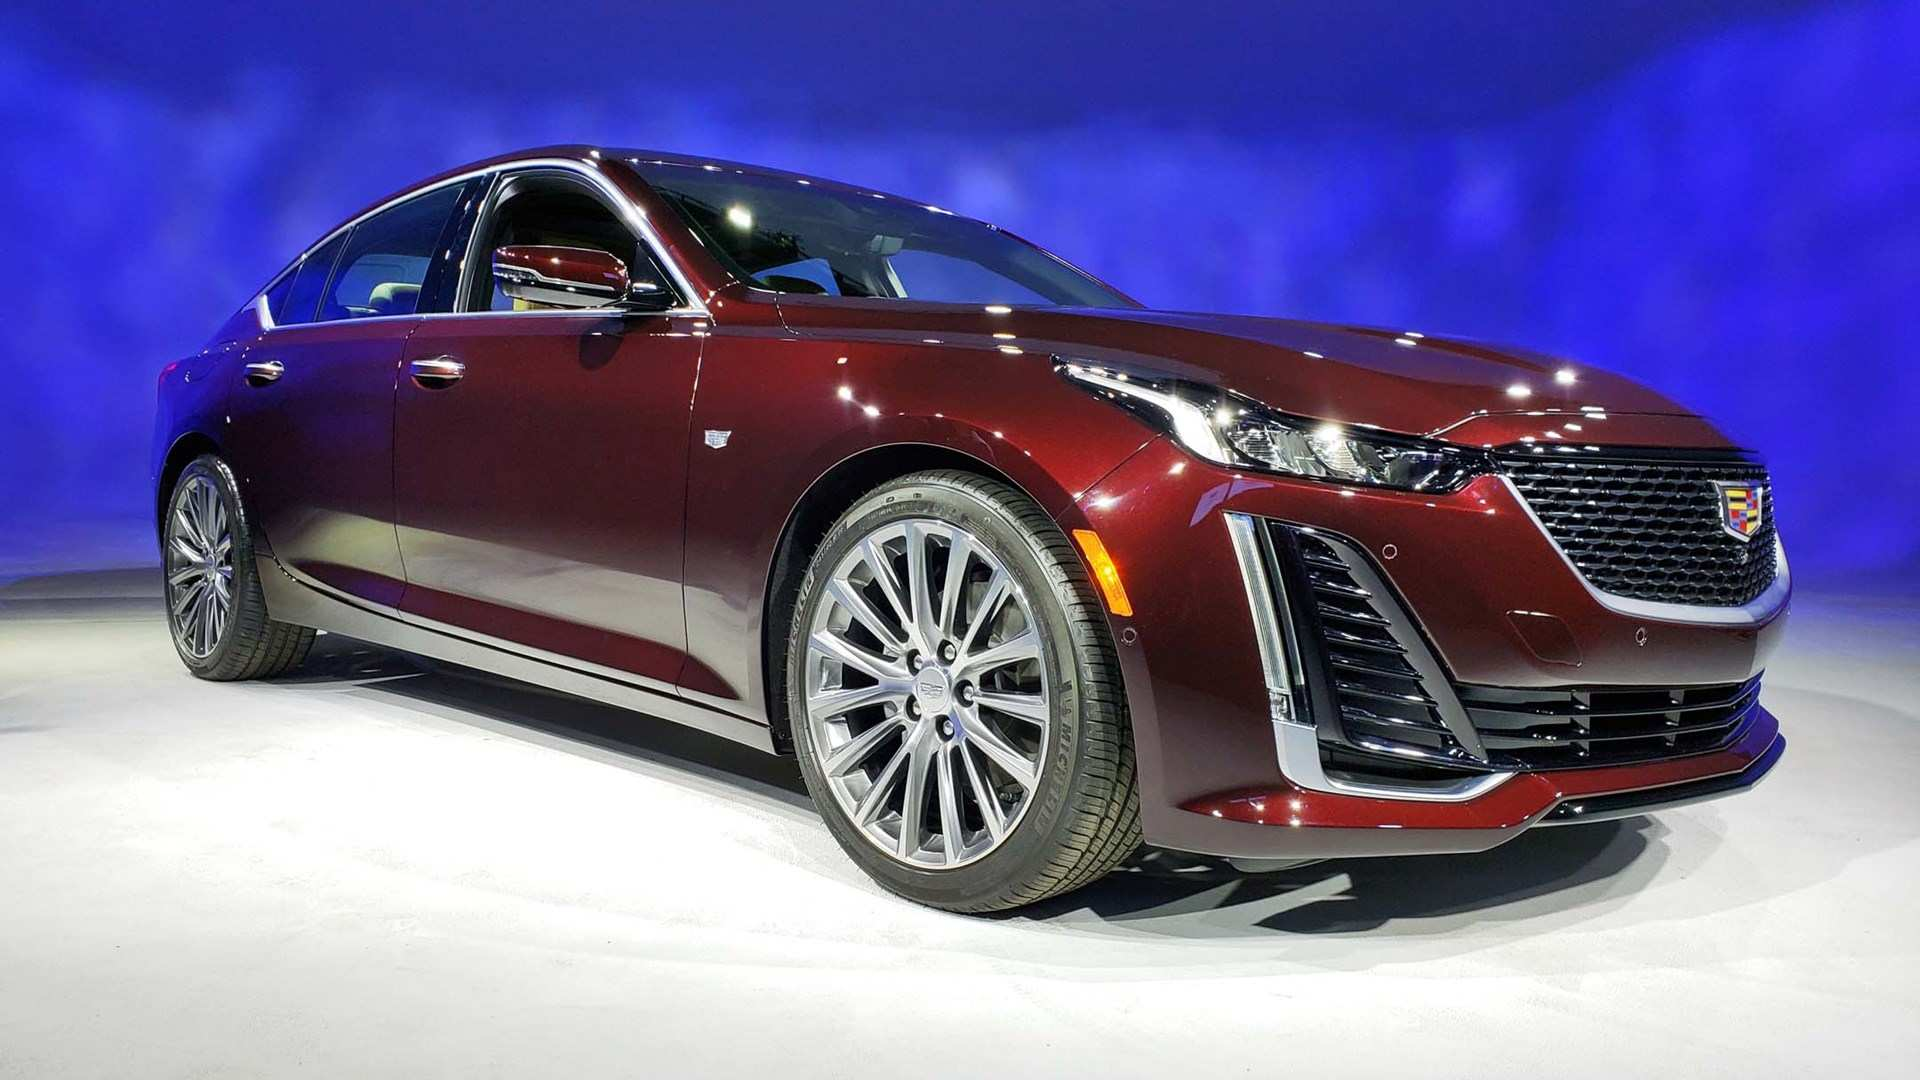 81 The Pictures Of 2020 Cadillac Ct5 Prices